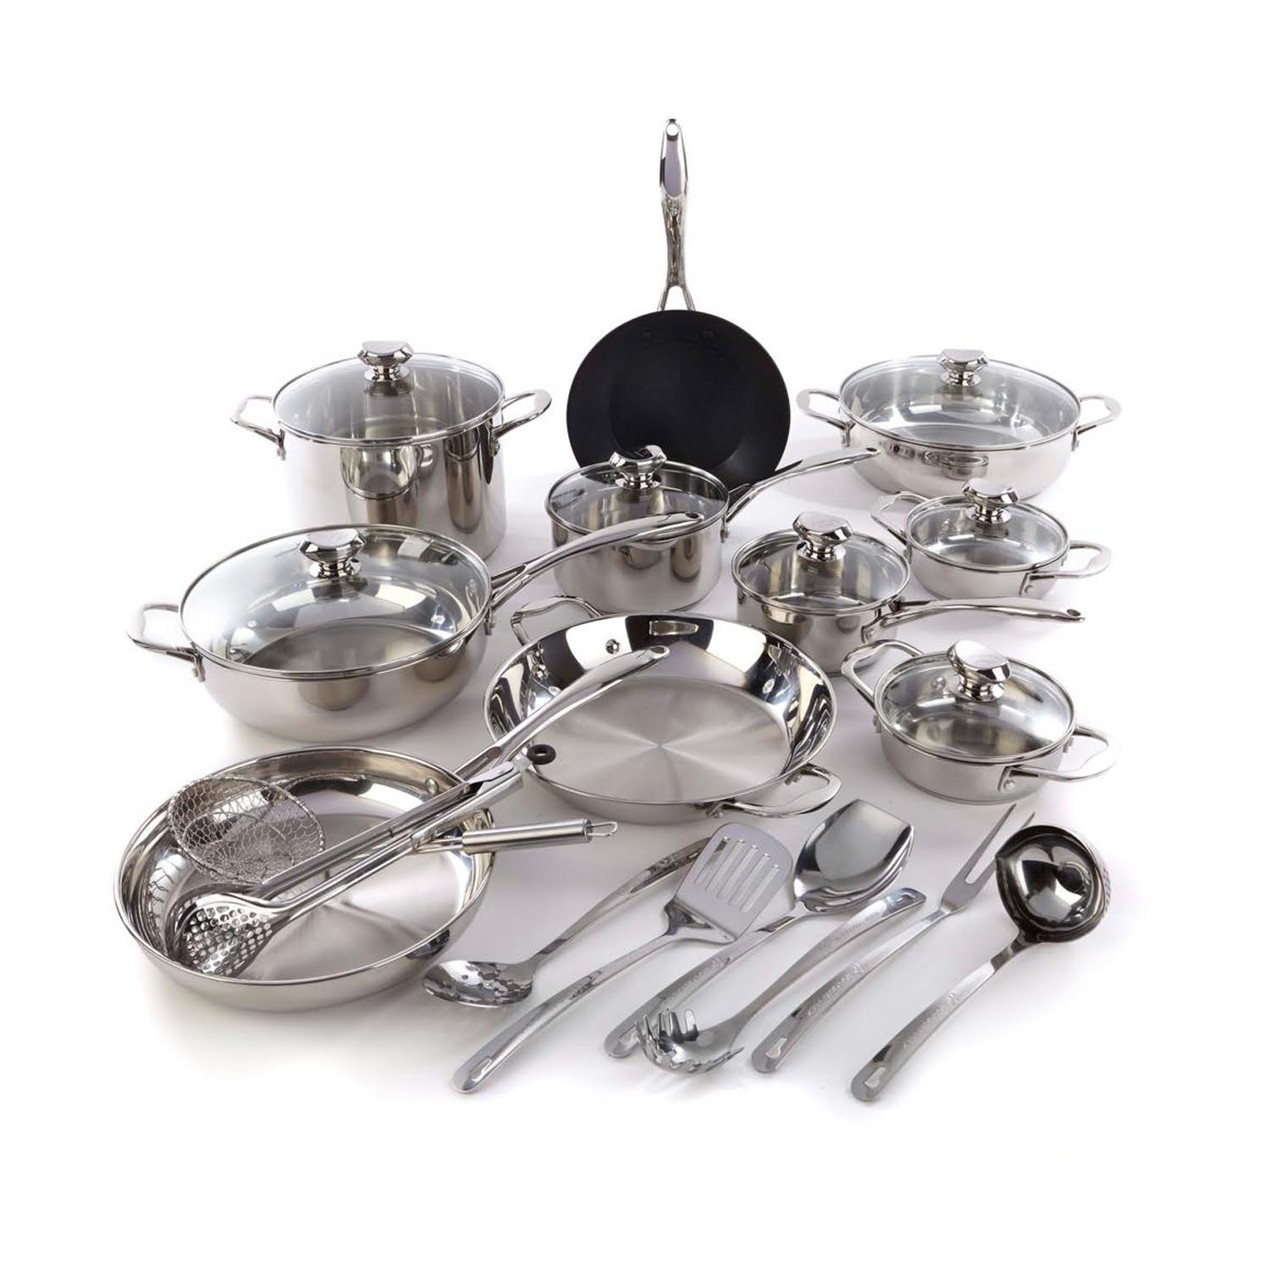 Wolfgang Puck Bistro Elite 25-piece Stainless Steel Cookware ...